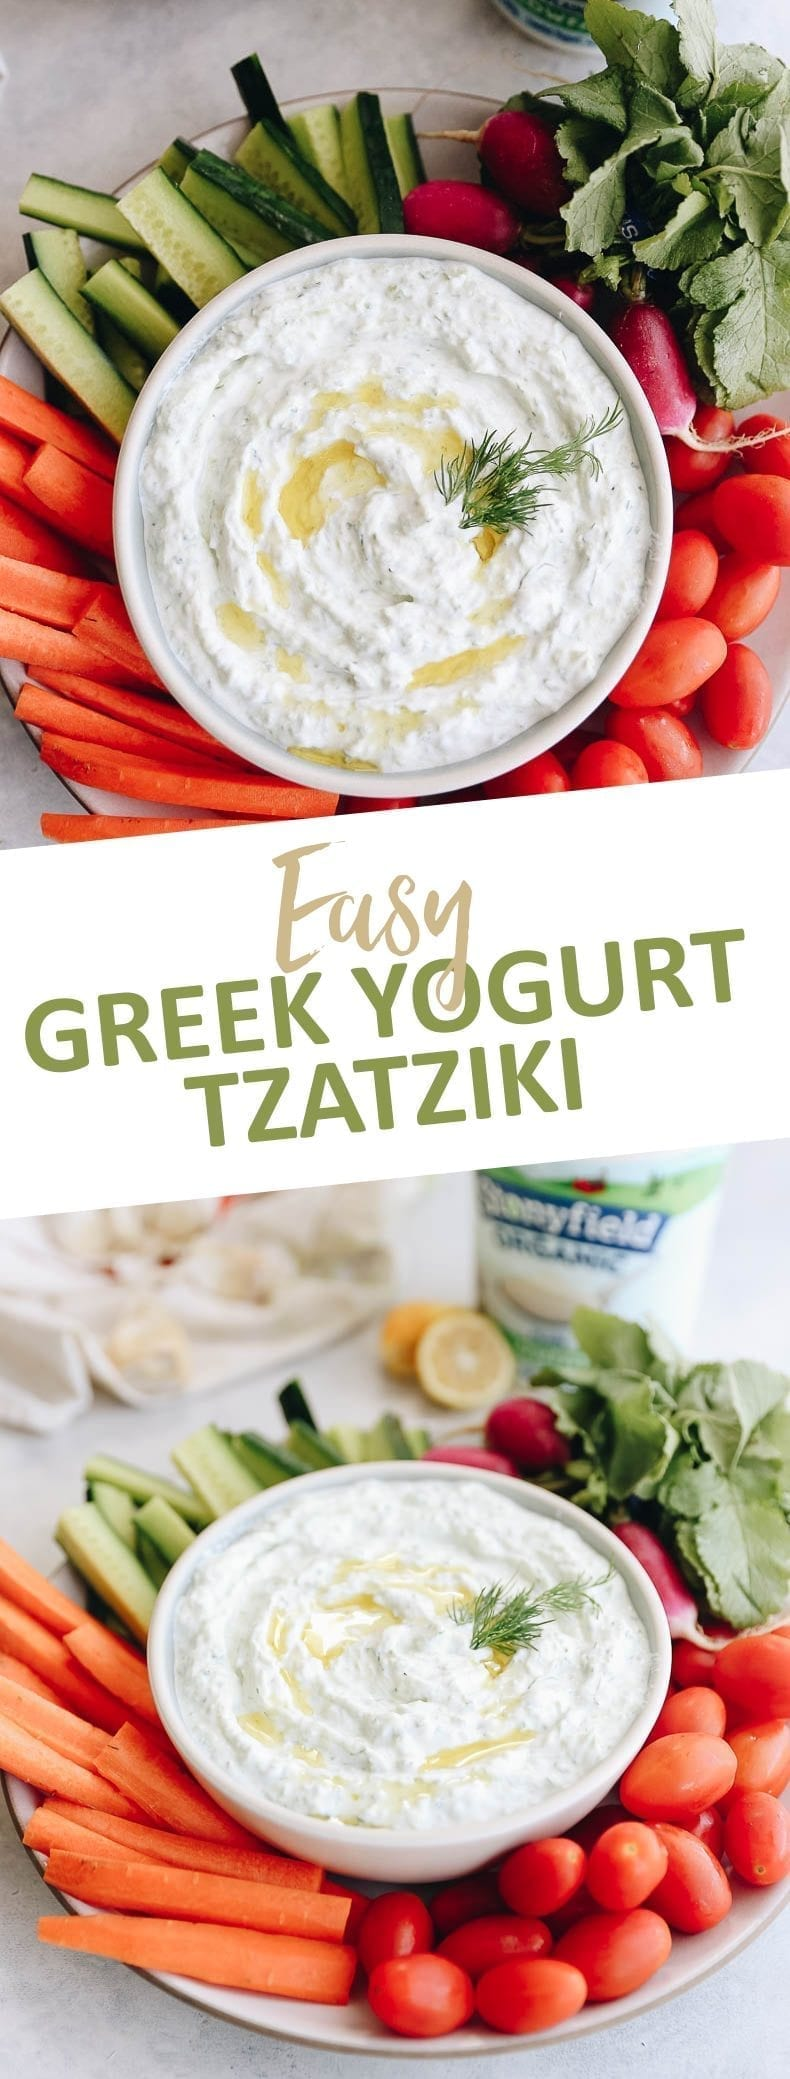 You'll be blown away by how easy it is to whip up this Easy Greek Yogurt Tzatziki Dip. Grab your veggies and get dipping with this healthy and nutritious dip recipe made from just 5 simple ingredients. #veggiedip #tzatziki #dip